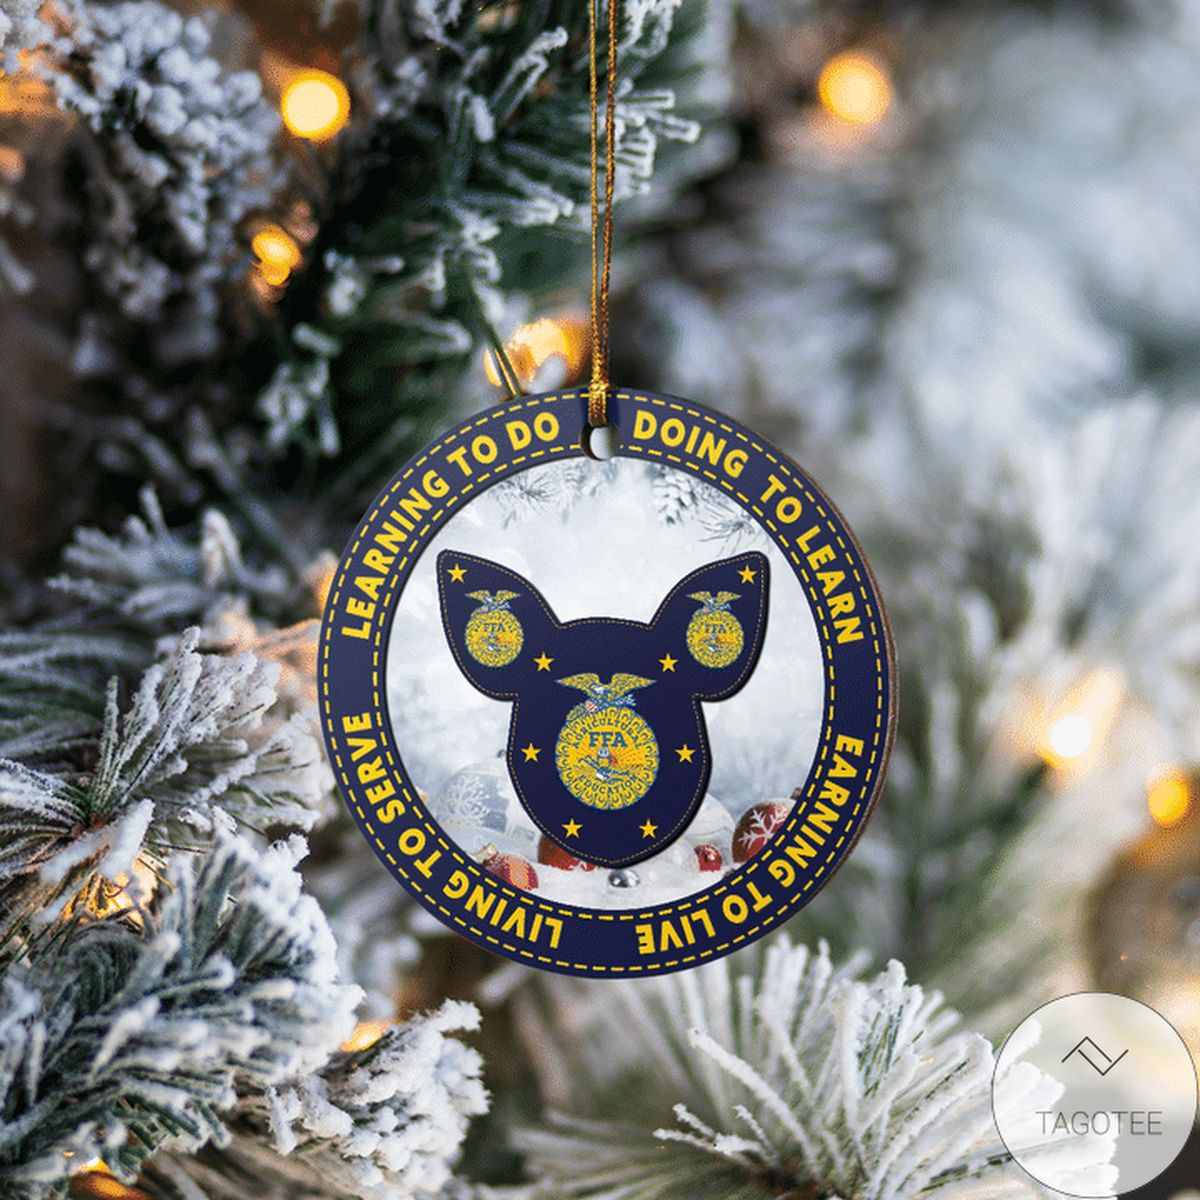 Awesome Pig Learning To Do Doing To Learn Ffa Logo Ornament